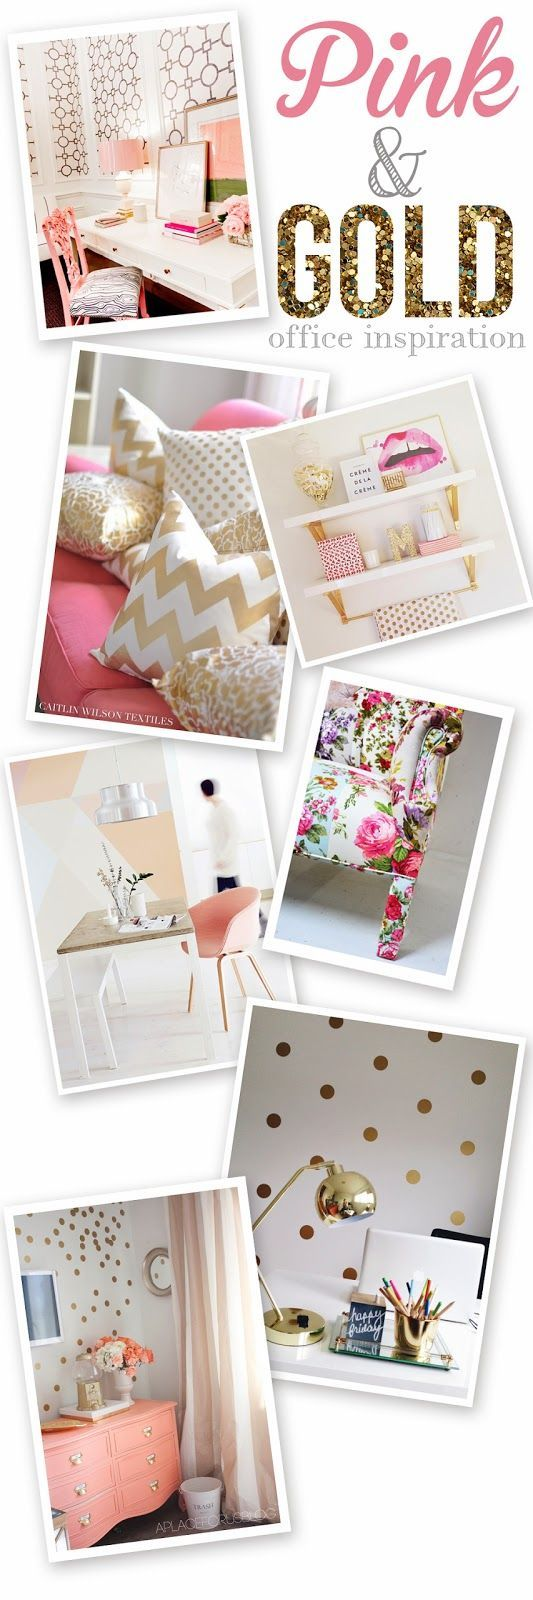 married and bright: Pink and Gold Office Inspiration